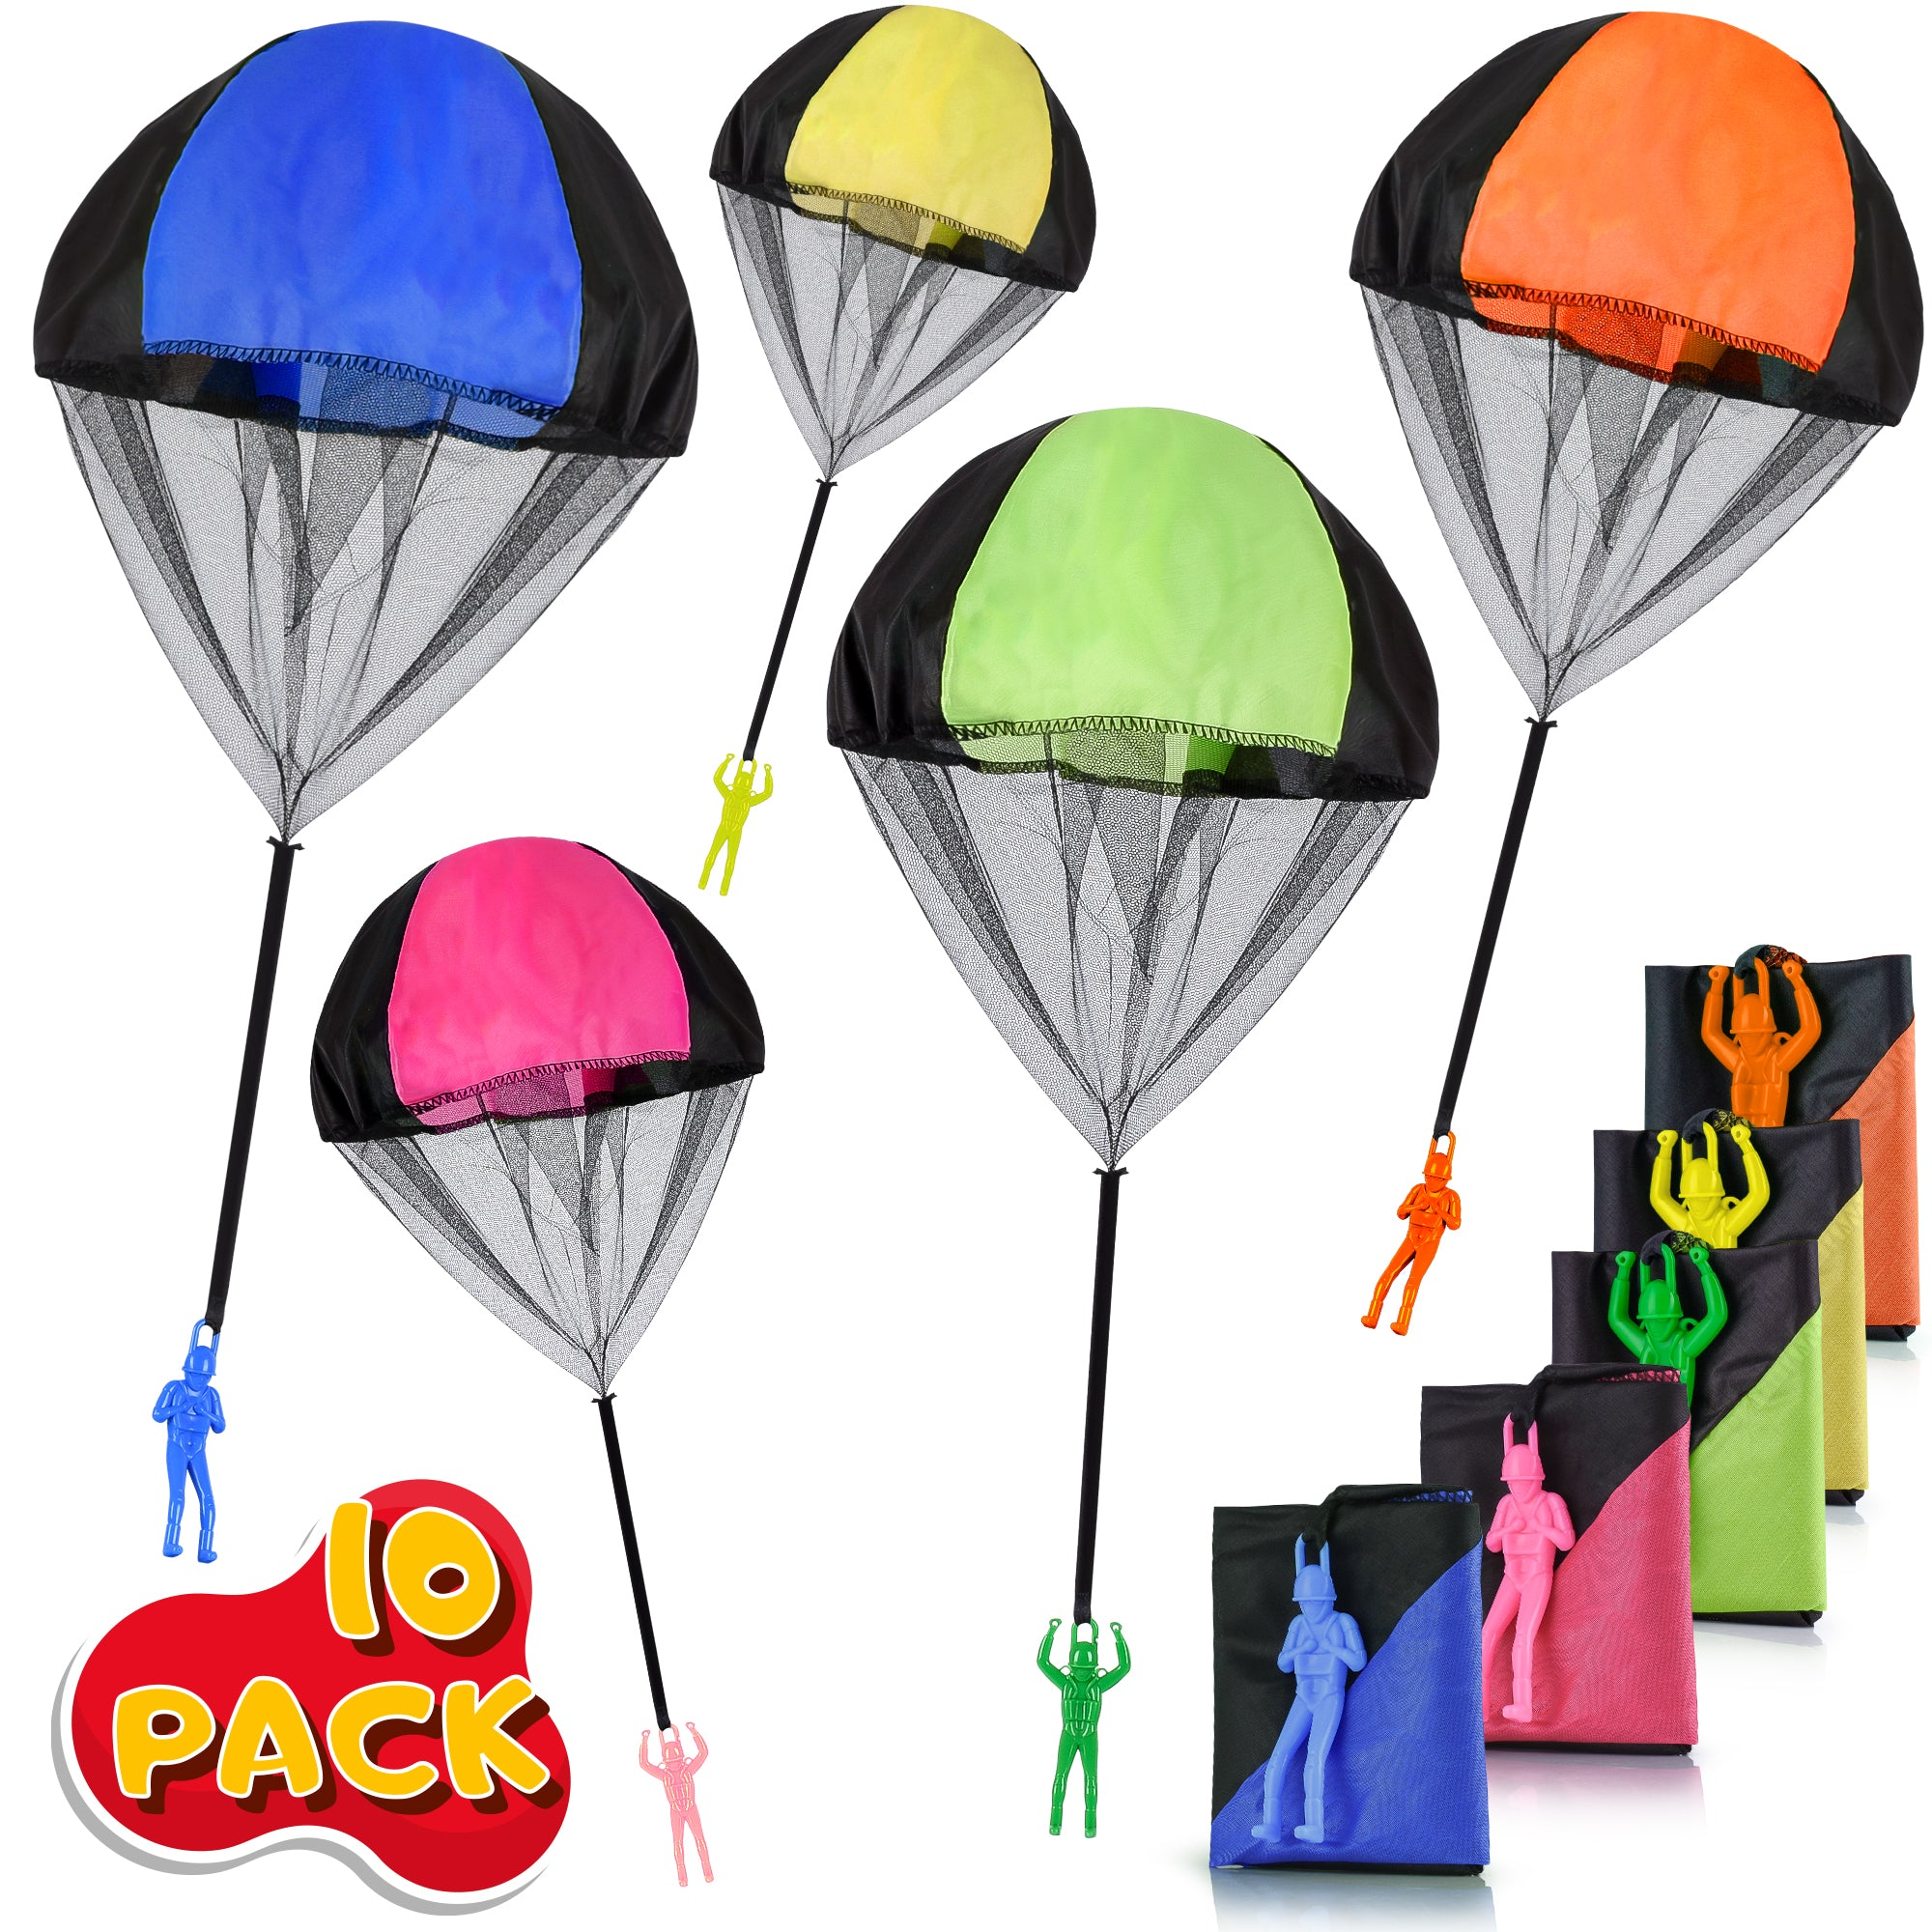 Parachute Toy, Tangle Free Throwing Toy Parachute, Outdoor Children's Flying Toys, No Assembly Required (10 Pieces Set)